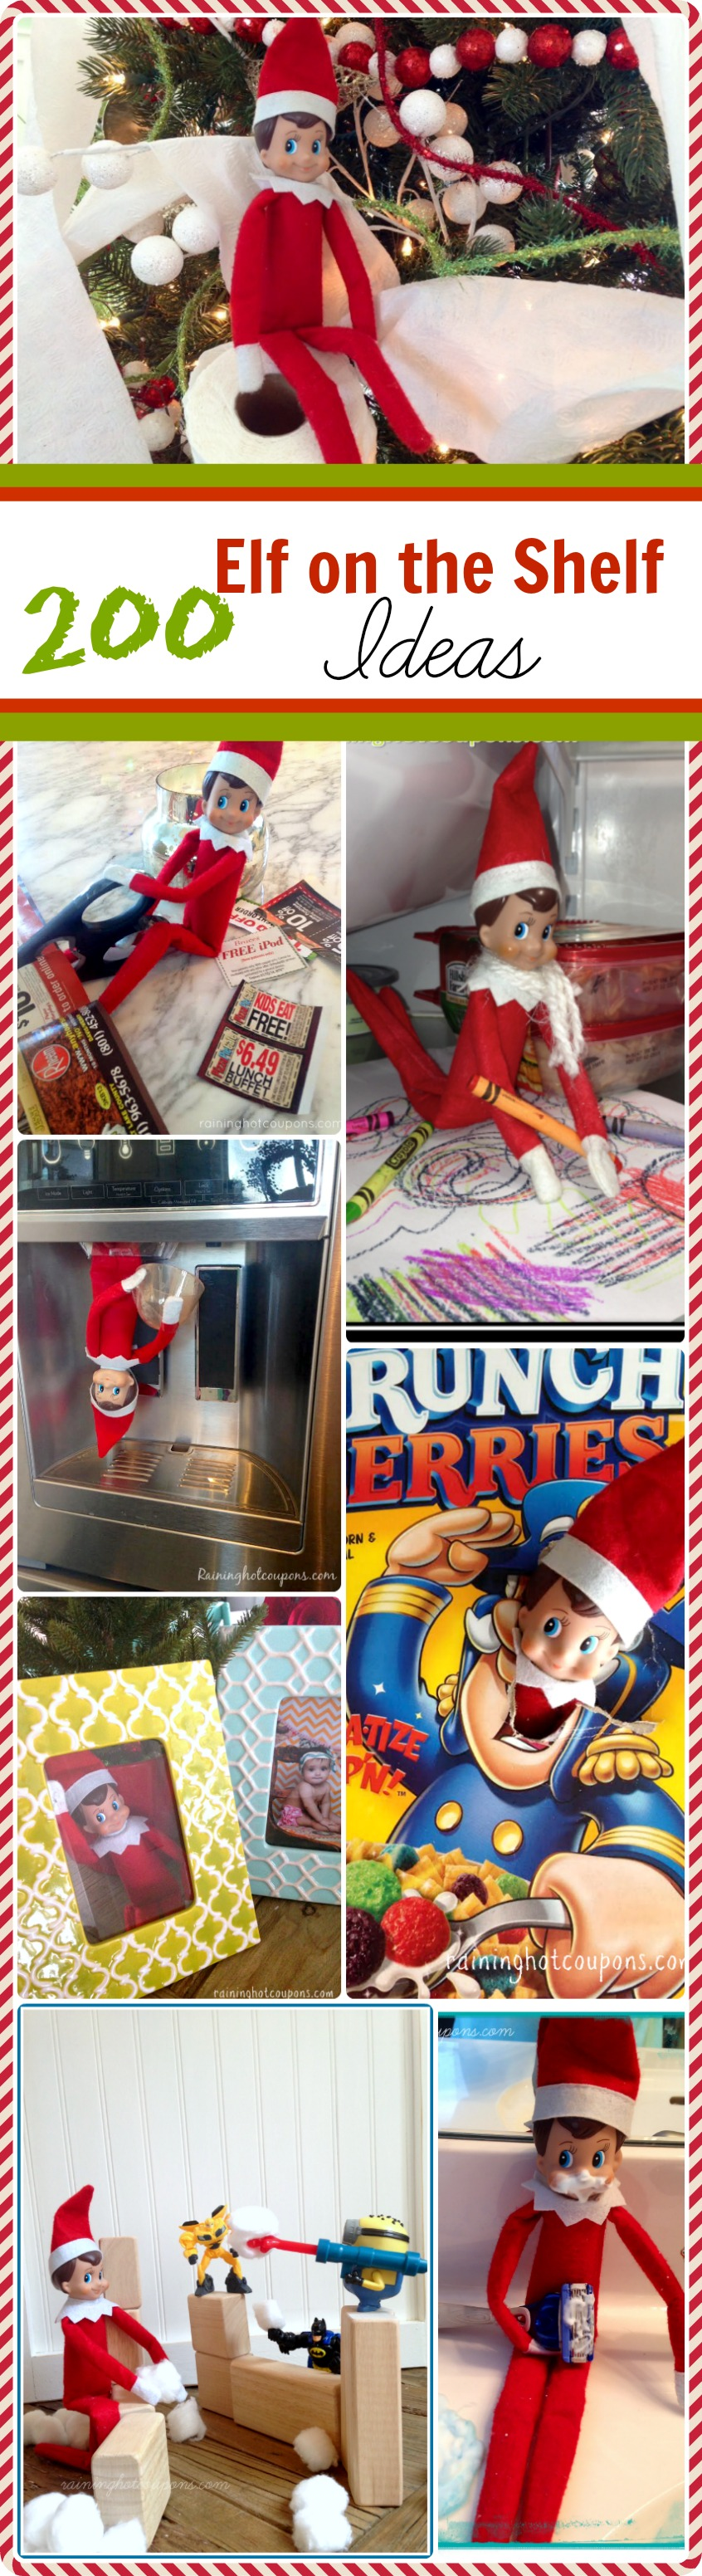 elf3 200 Easy Elf on the Shelf Ideas